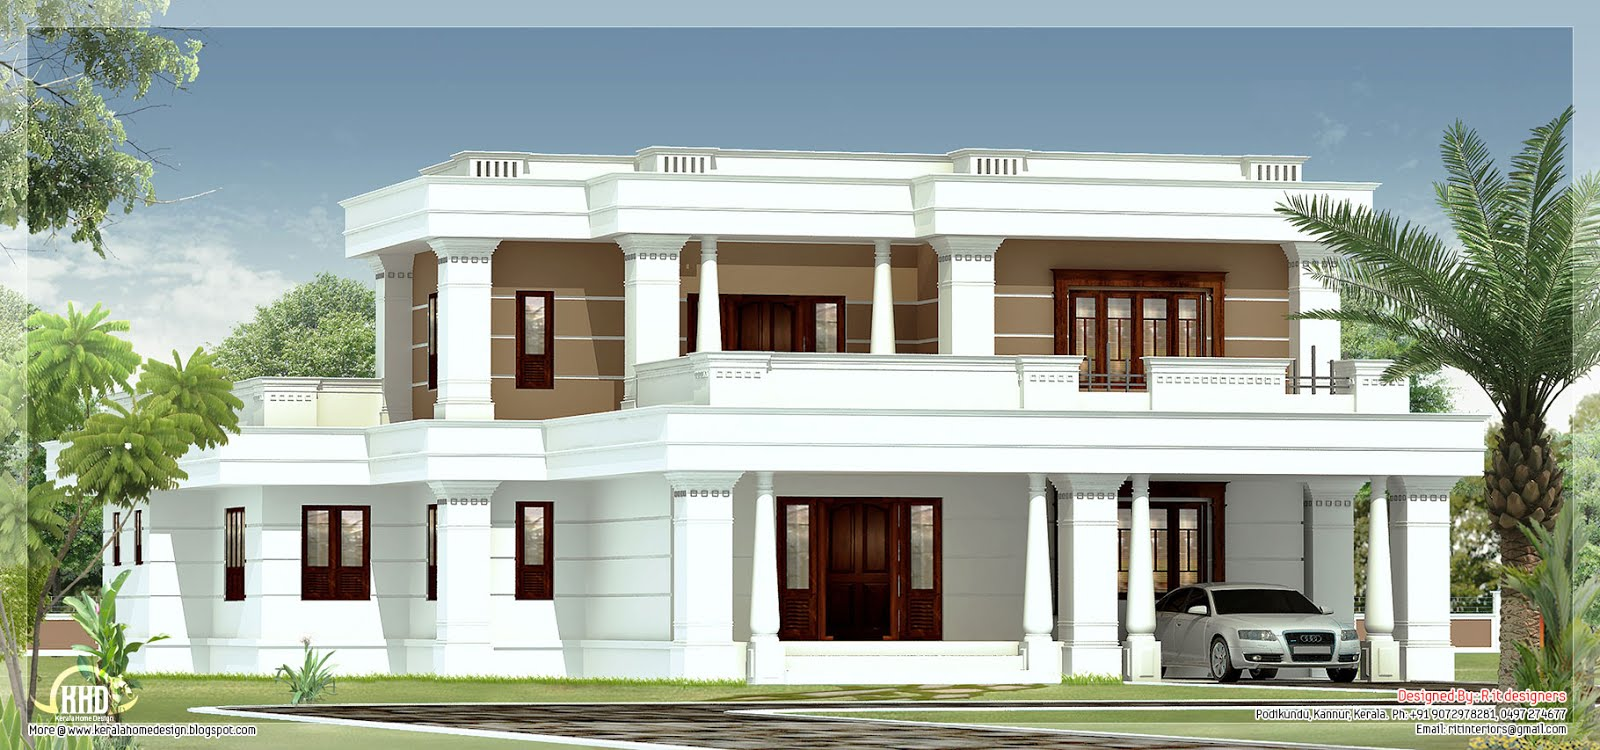 4 bedroom flat roof villa house design plans - Flat roof home designs ...